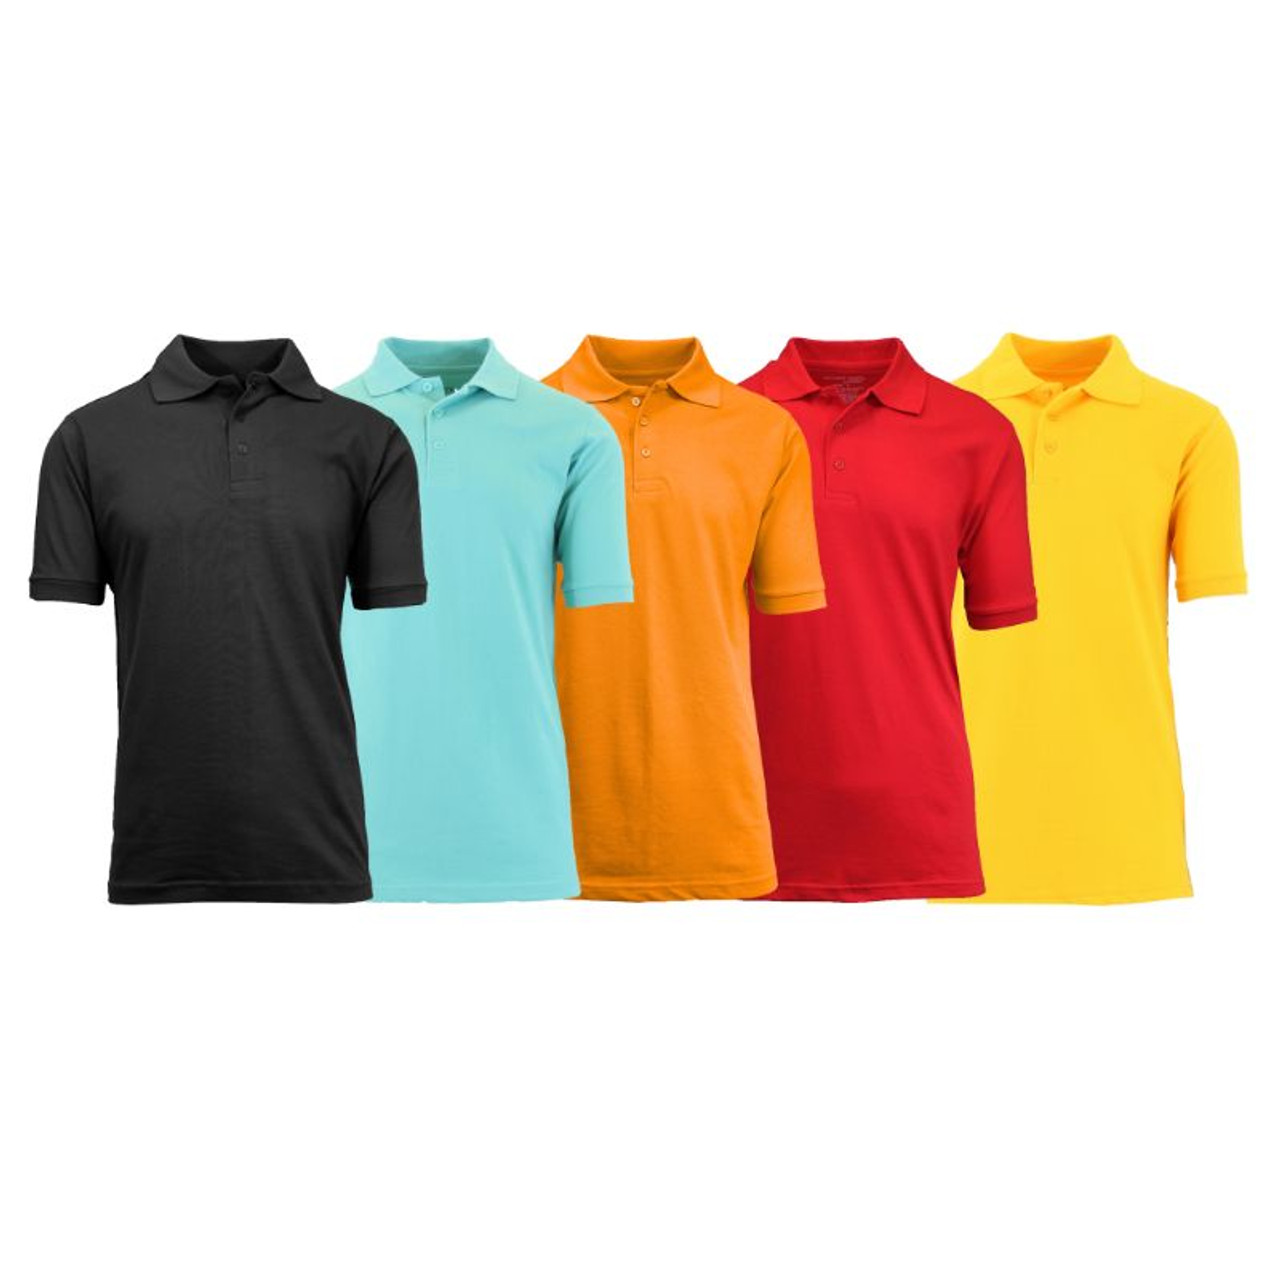 Men's Short-Sleeve, Semi-Fitted Polo Shirts - 5 Pack